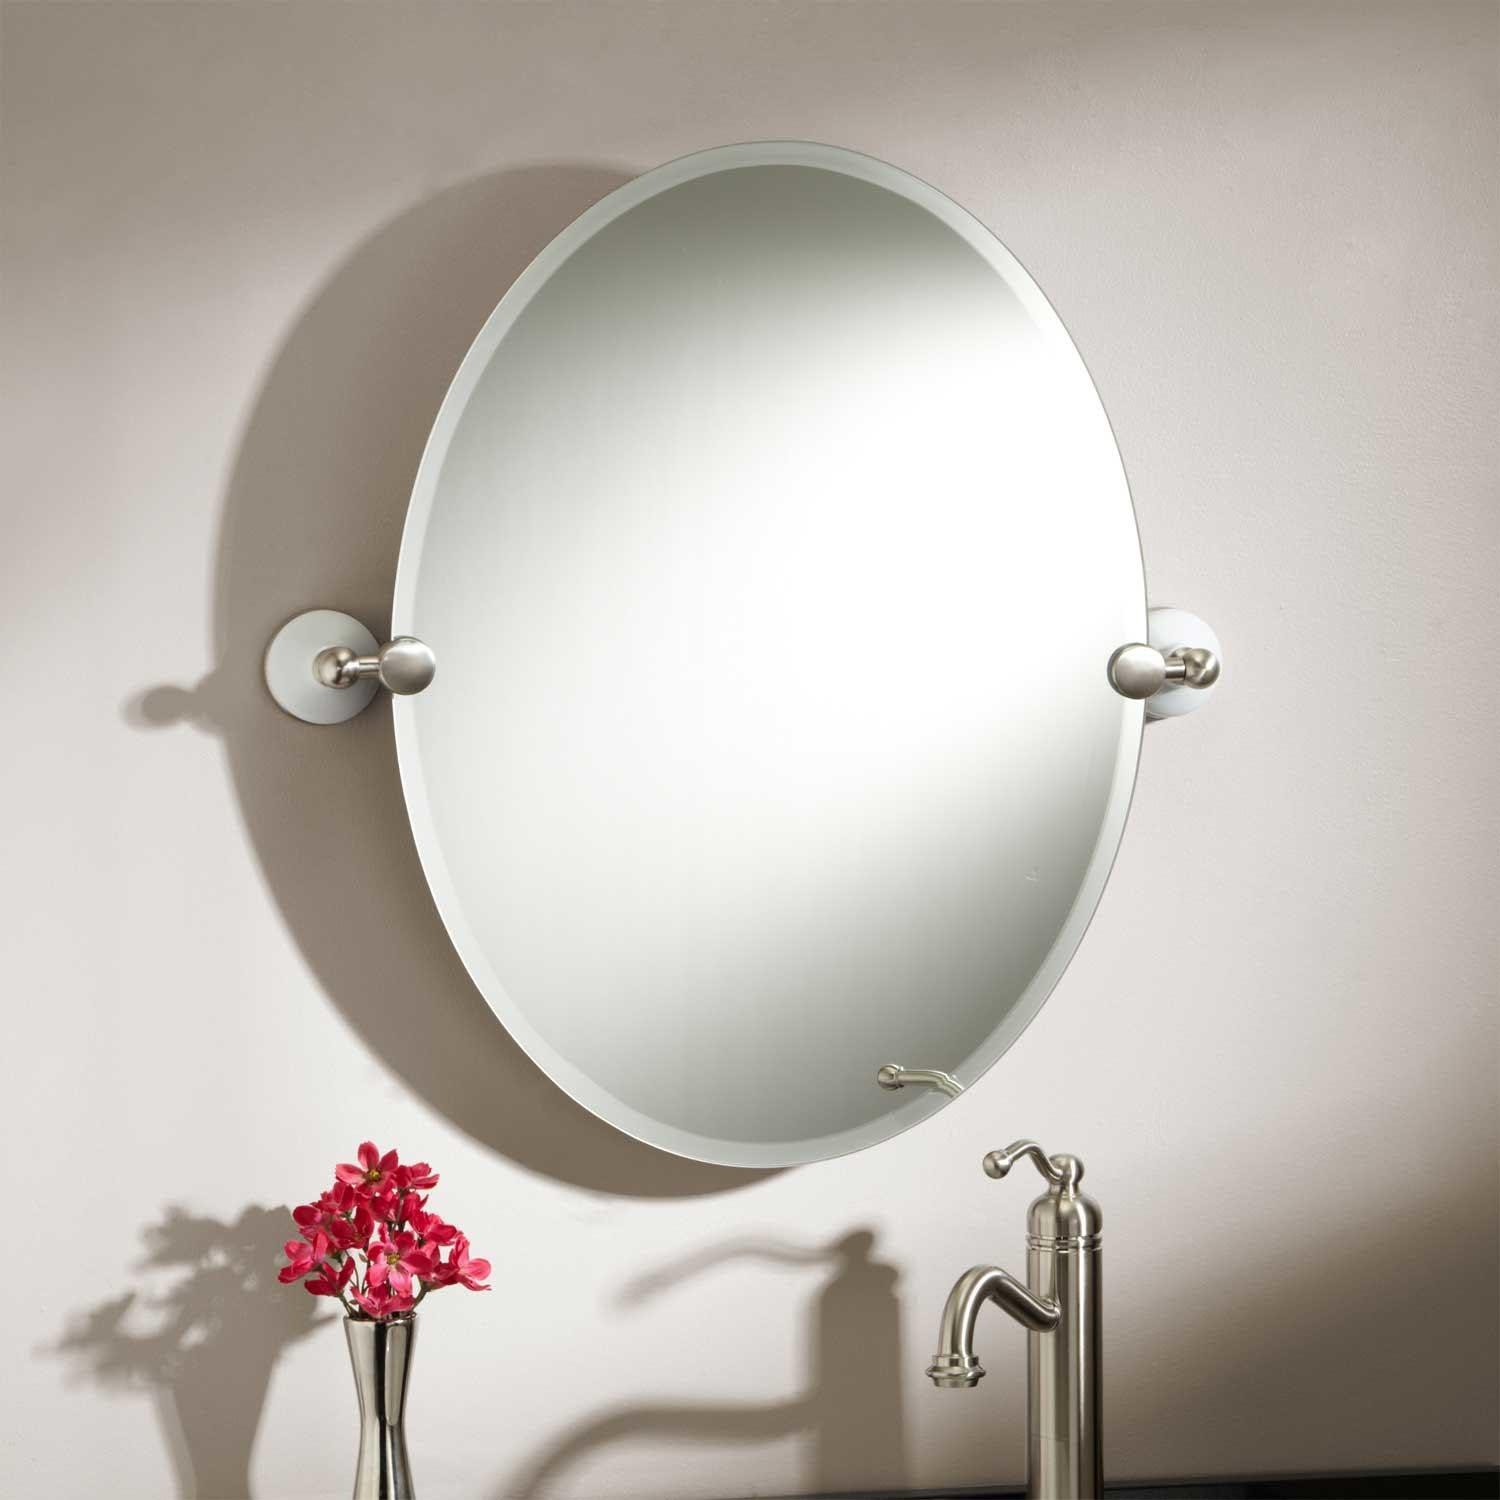 Oval Bathroom Mirrors Brushed Nickel | Best Decor Things Within Oval Bath Mirrors (Image 12 of 20)